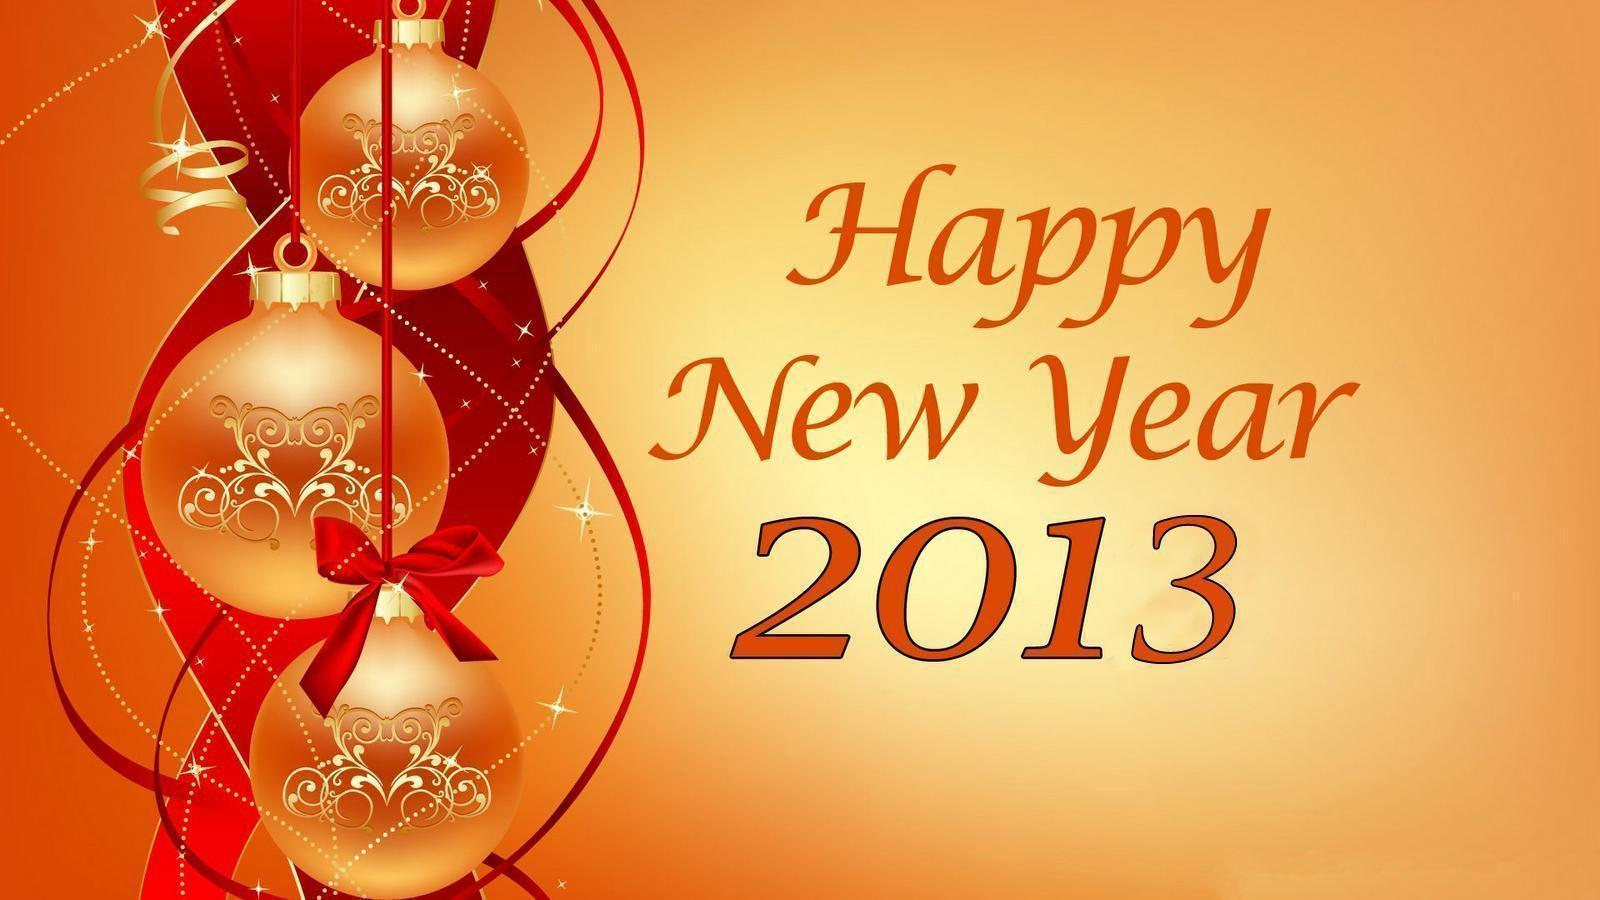 happy new year backgrounds free - wallpaper cave